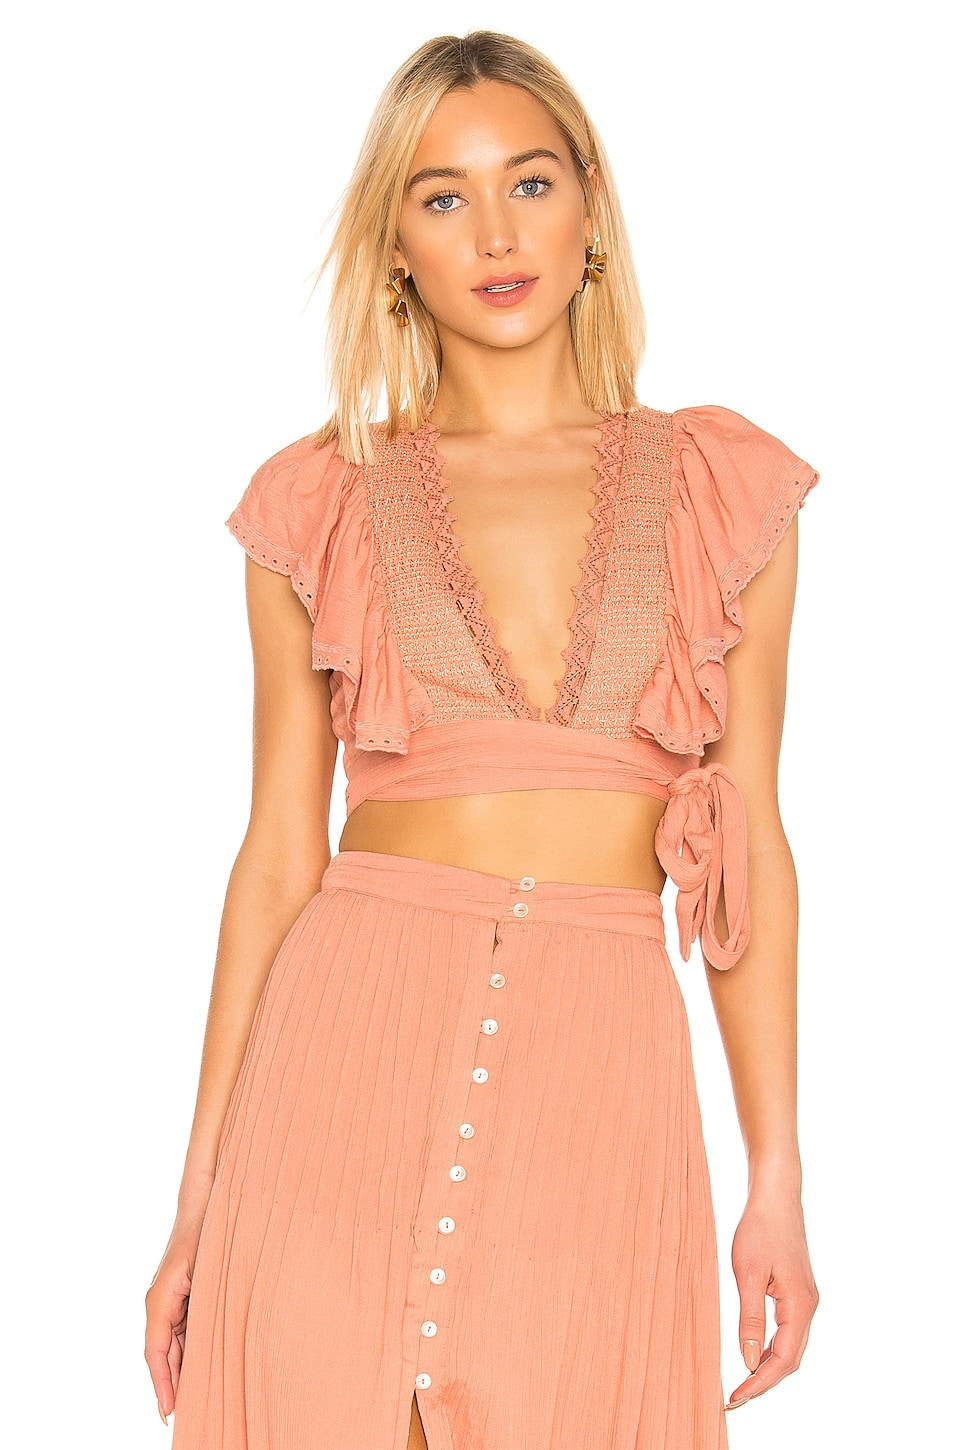 House of Harlow 1960 X REVOLVE Juniper Top in Rose